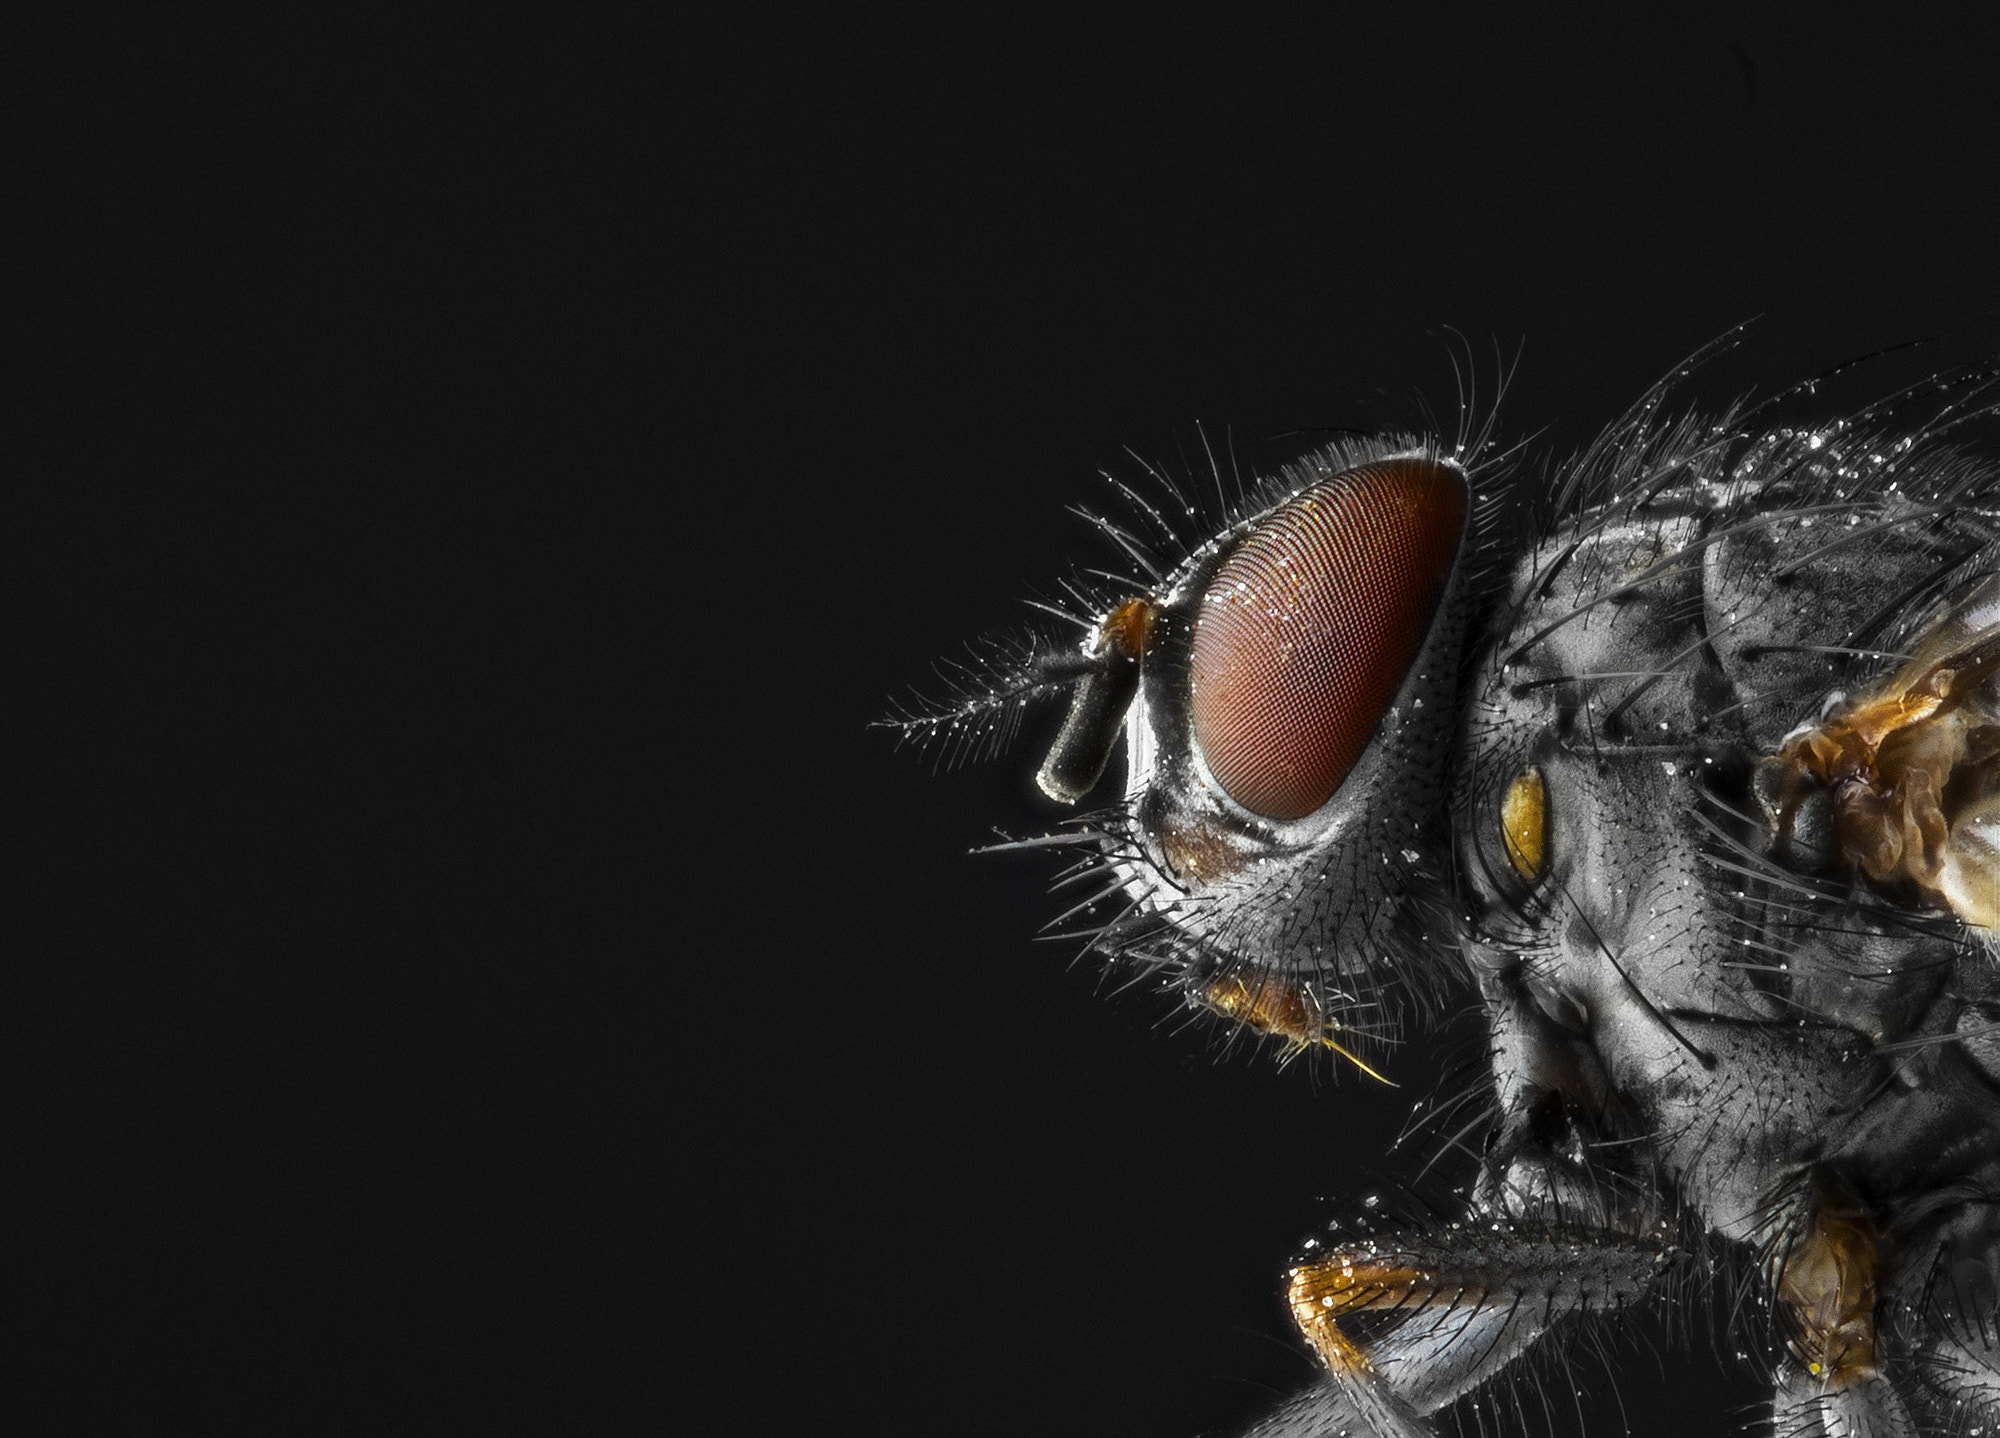 Photograph The Fly by Mikael Sundberg on 500px